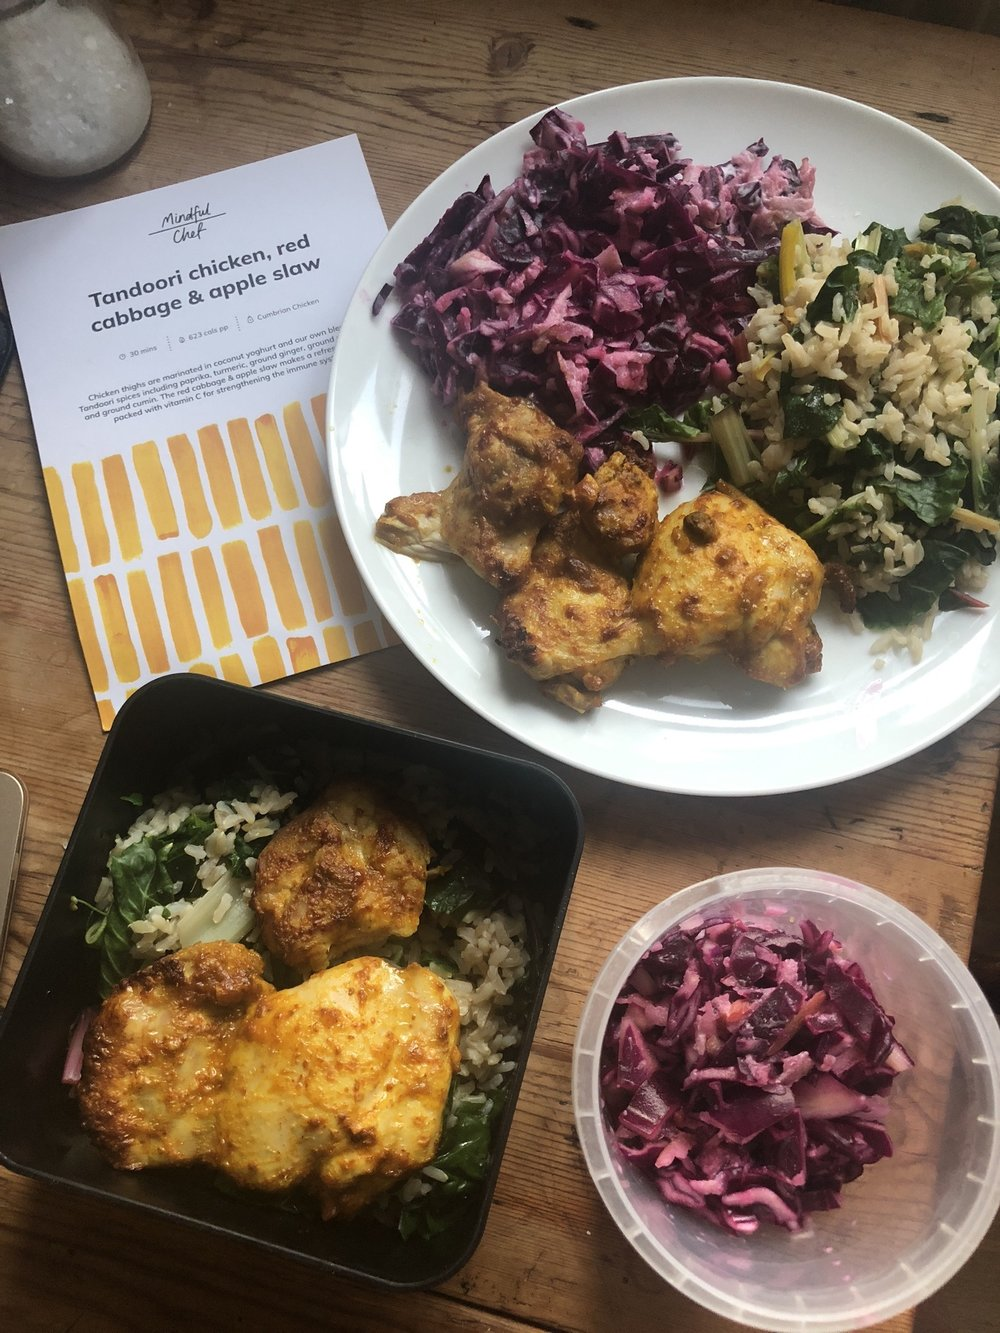 Getting two meals out of one Mindful Chef dish | Grace Brown Fitness London